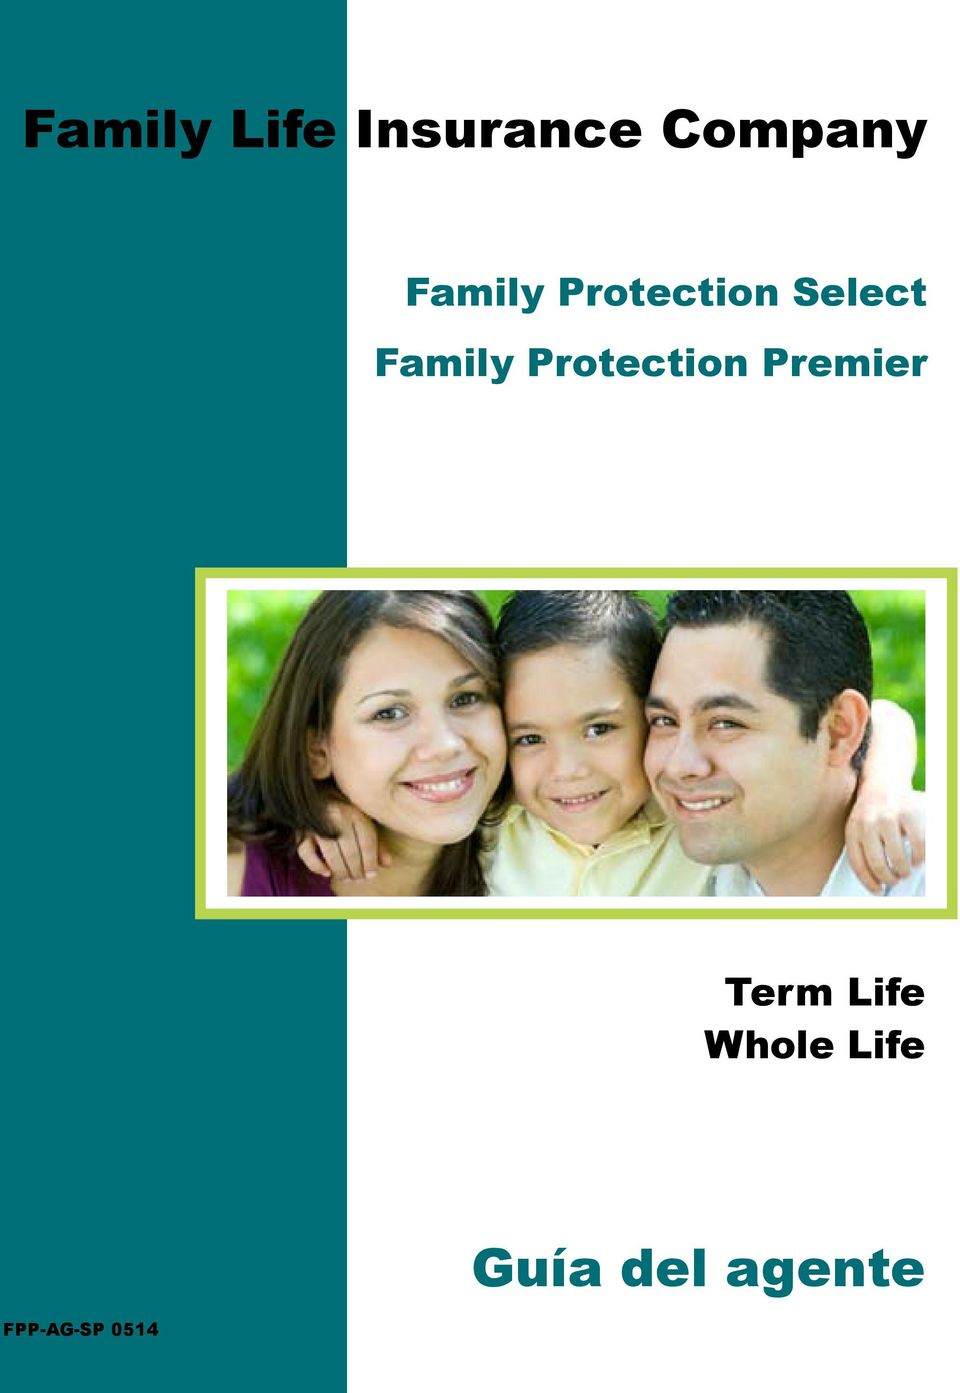 Family Protection Premier